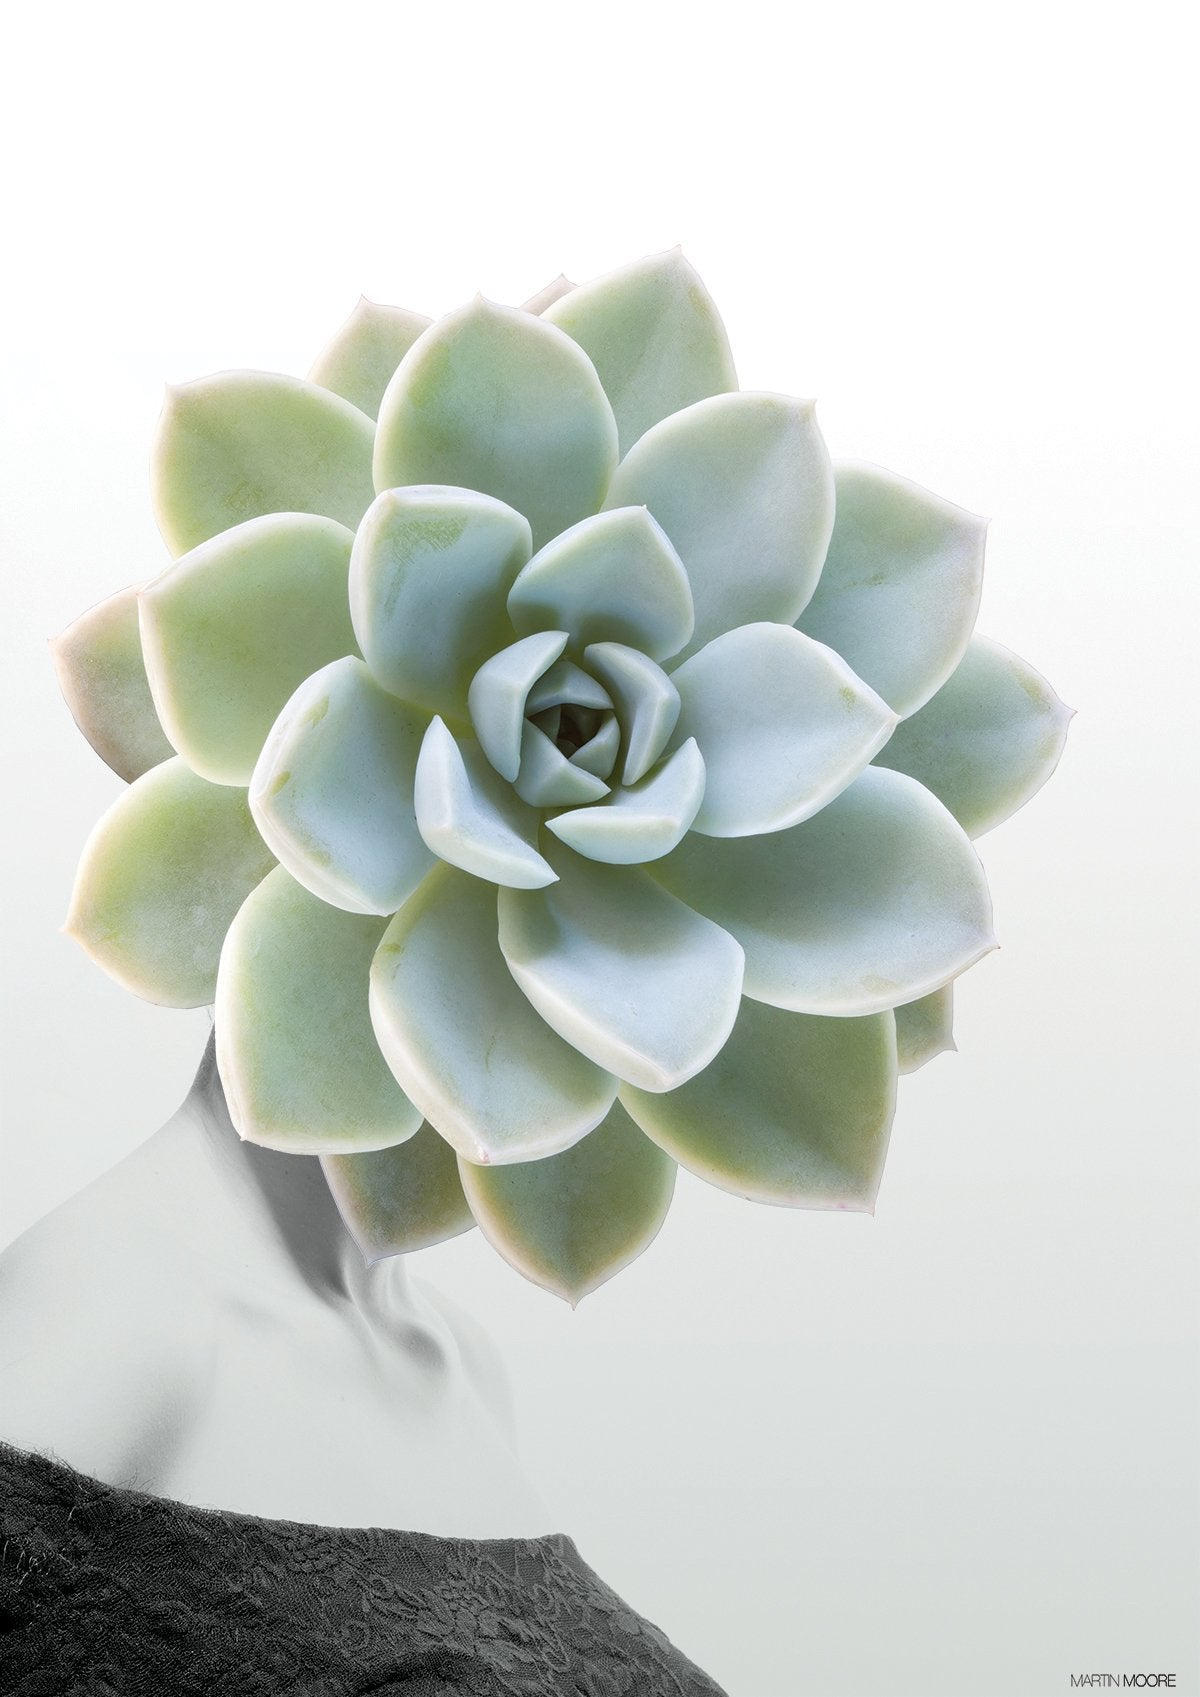 Succulent #1 - By Martin Moore